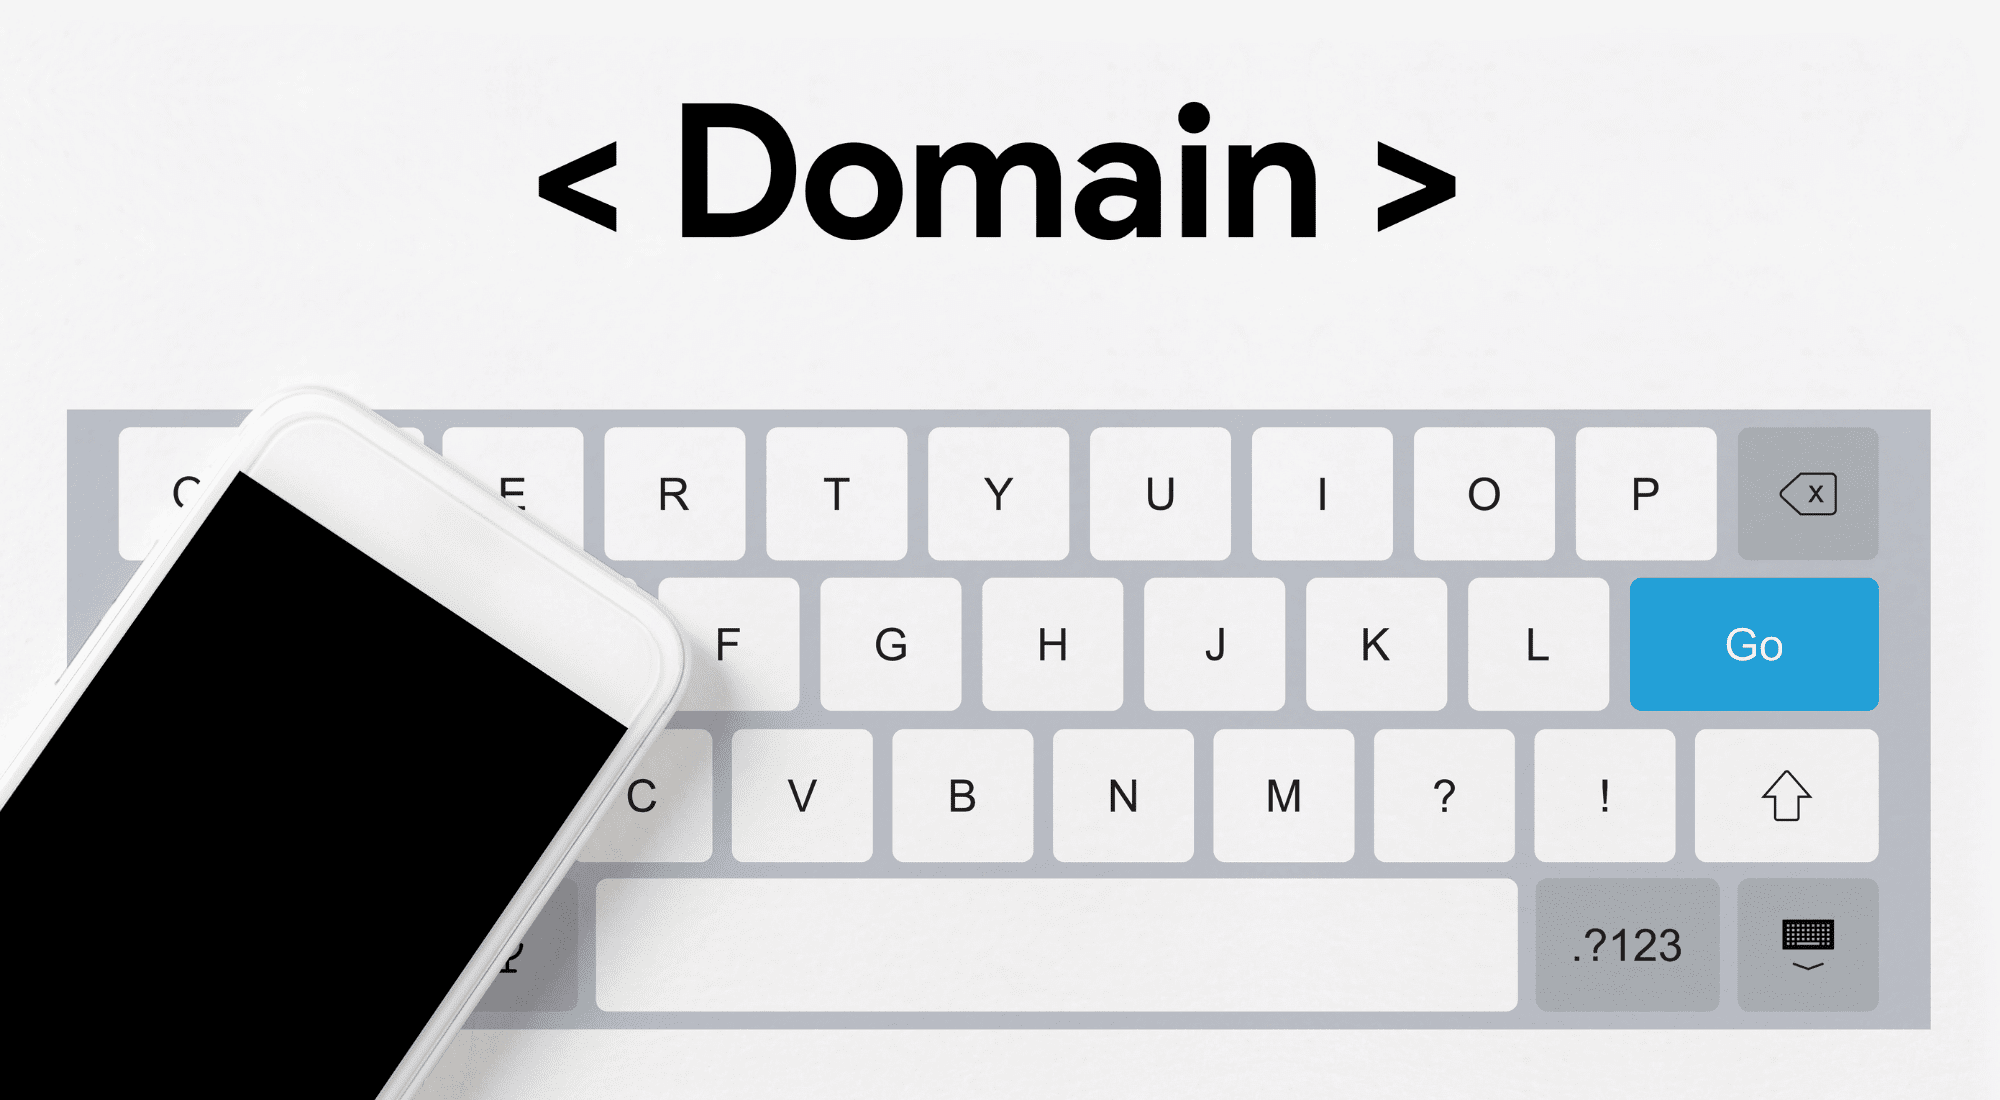 List of Top-Level Domains